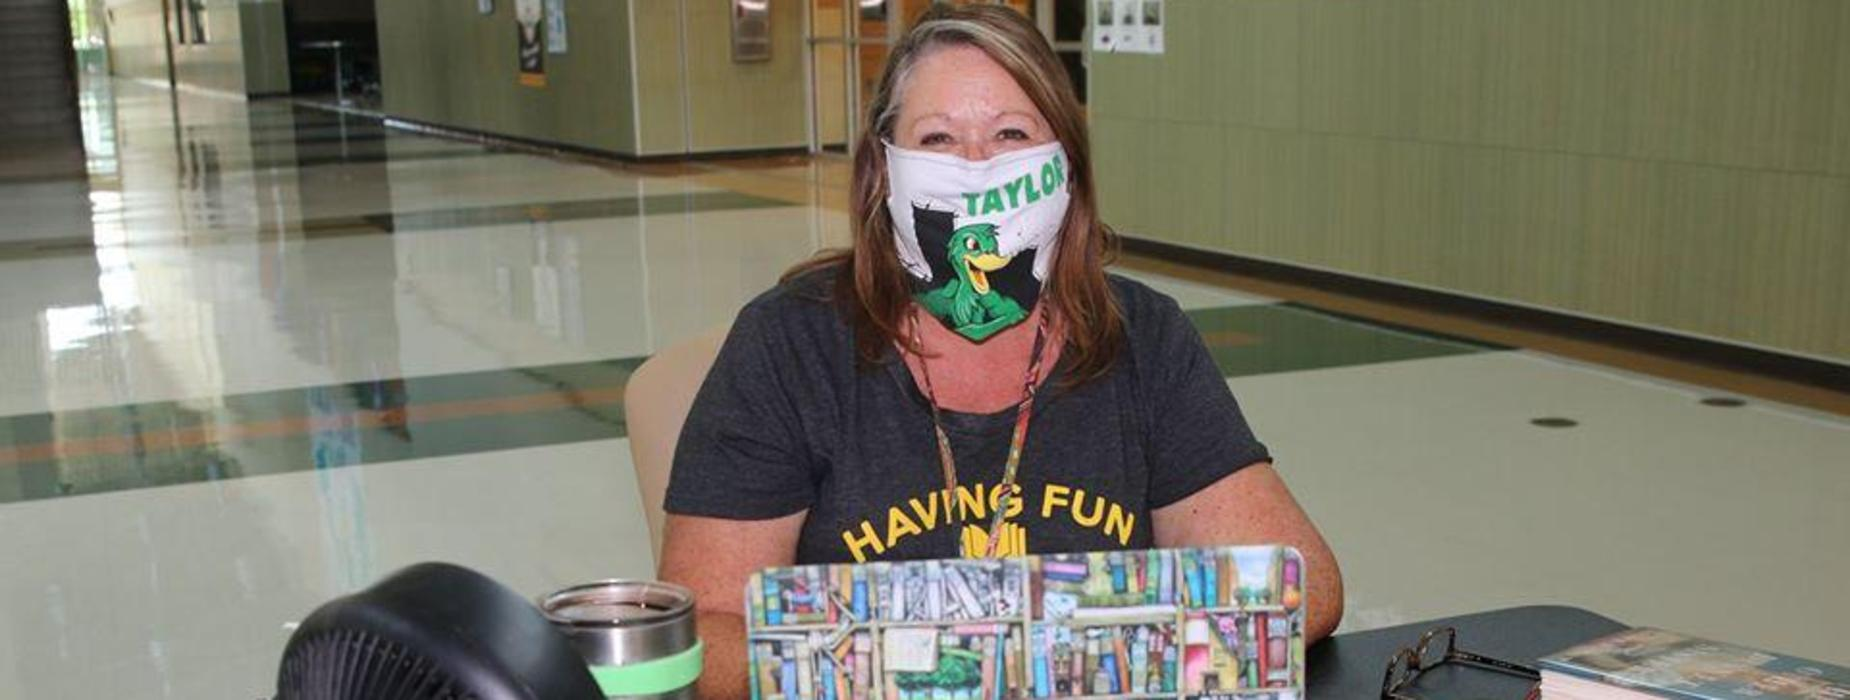 Librarian with face mask